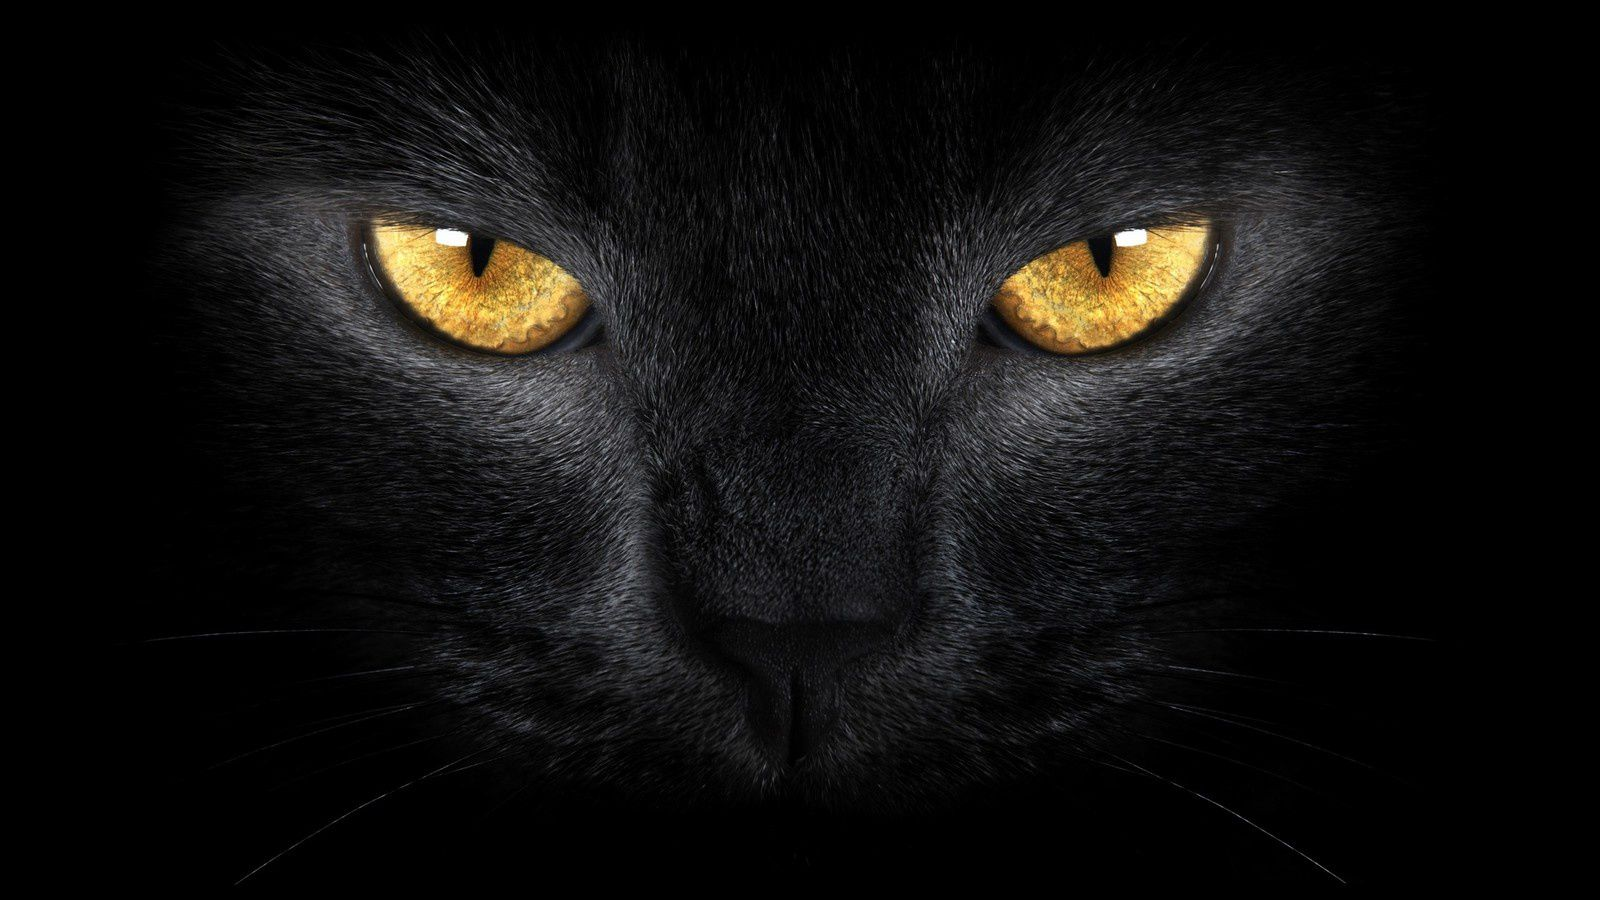 Chat - Noir - Regard - Wallpaper - Free